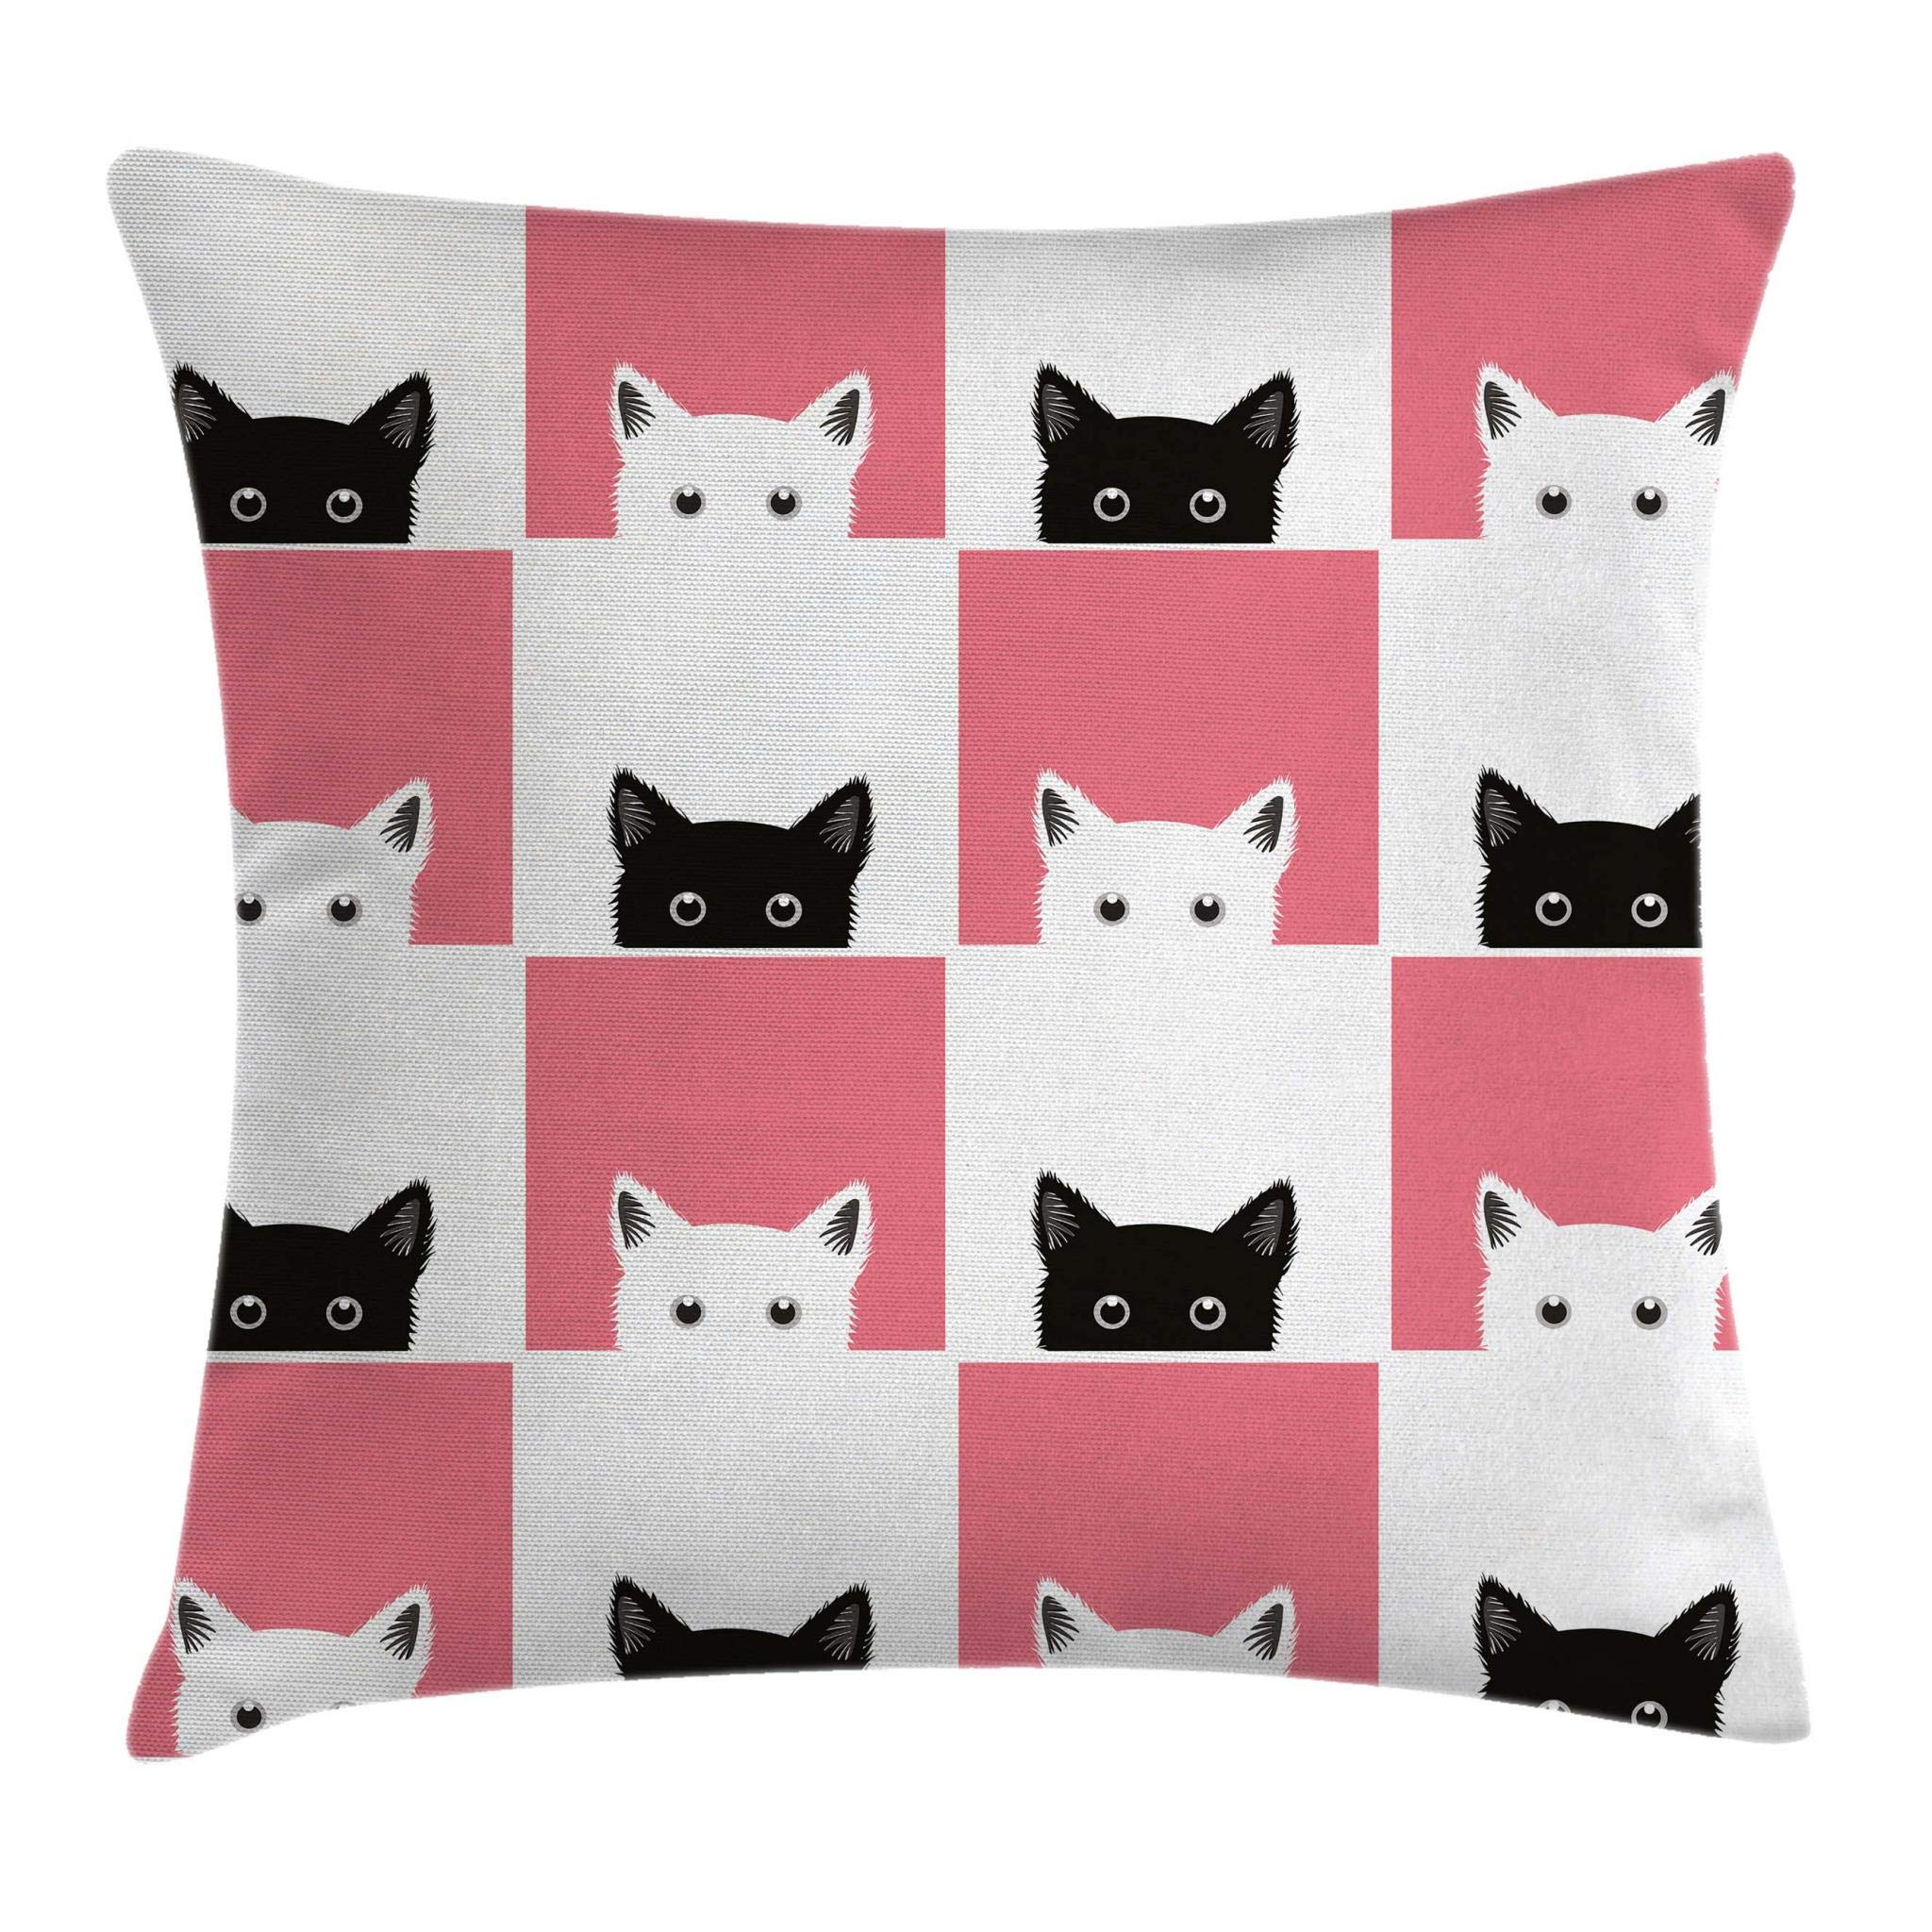 Ambesonne Cats Throw Pillow Cushion Cover by, Chess Board Design with Cute Kittens Feline Baby Kitty Animals Pets Retro Mosaic, Decorative Square Accent Pillow Case, 20 X 20 Inches, Black White Pink by Ambesonne